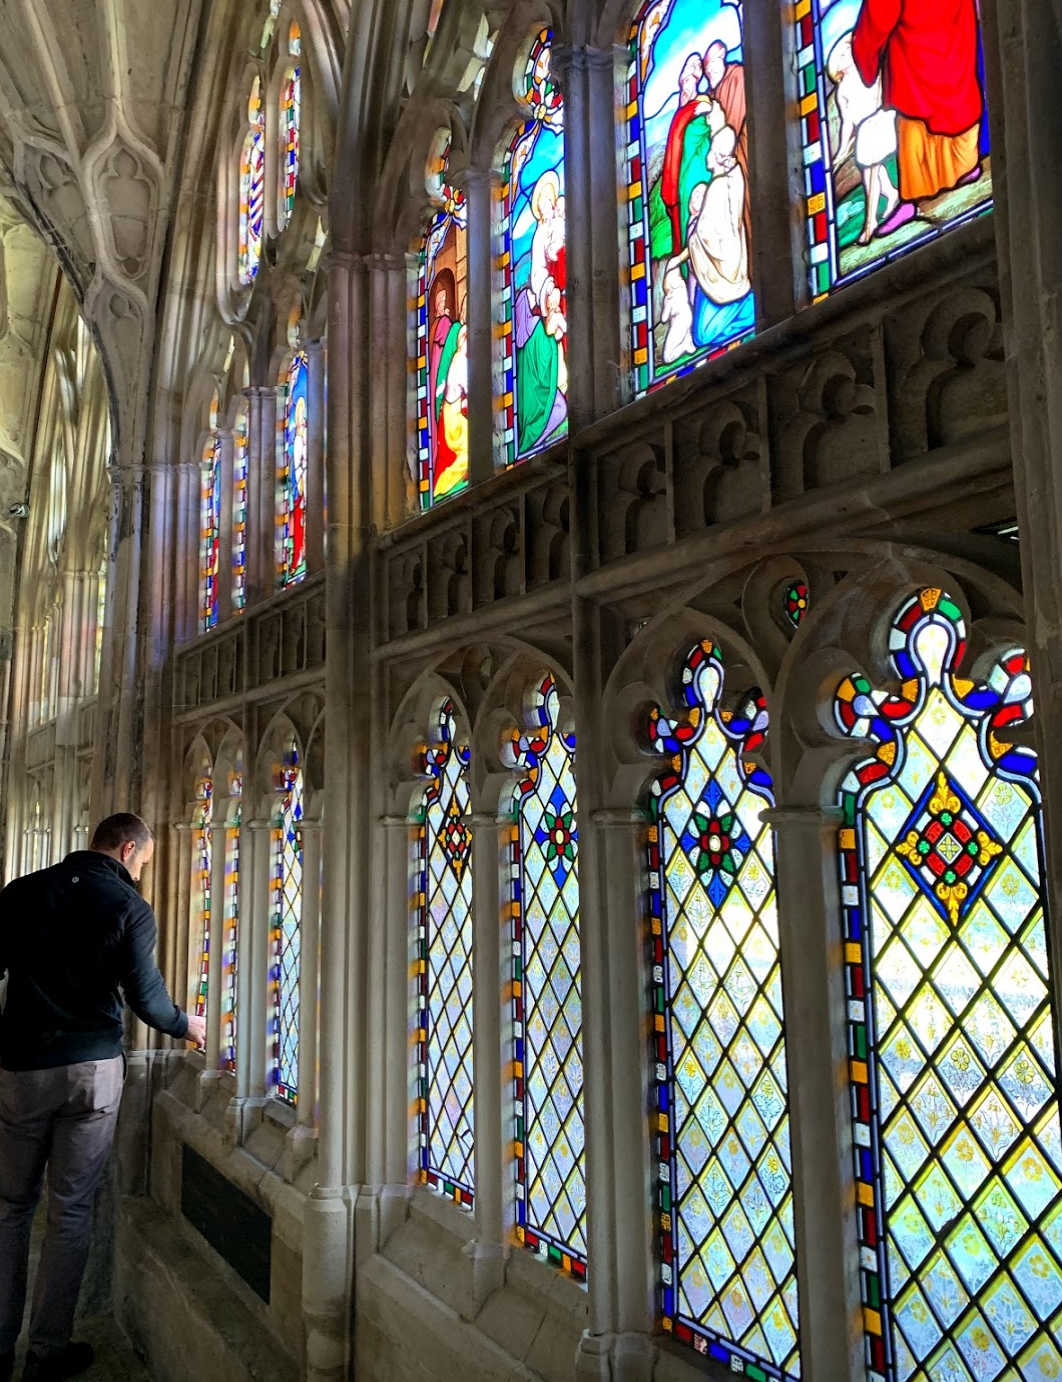 Stained glass windows, Gloucester Cathedral